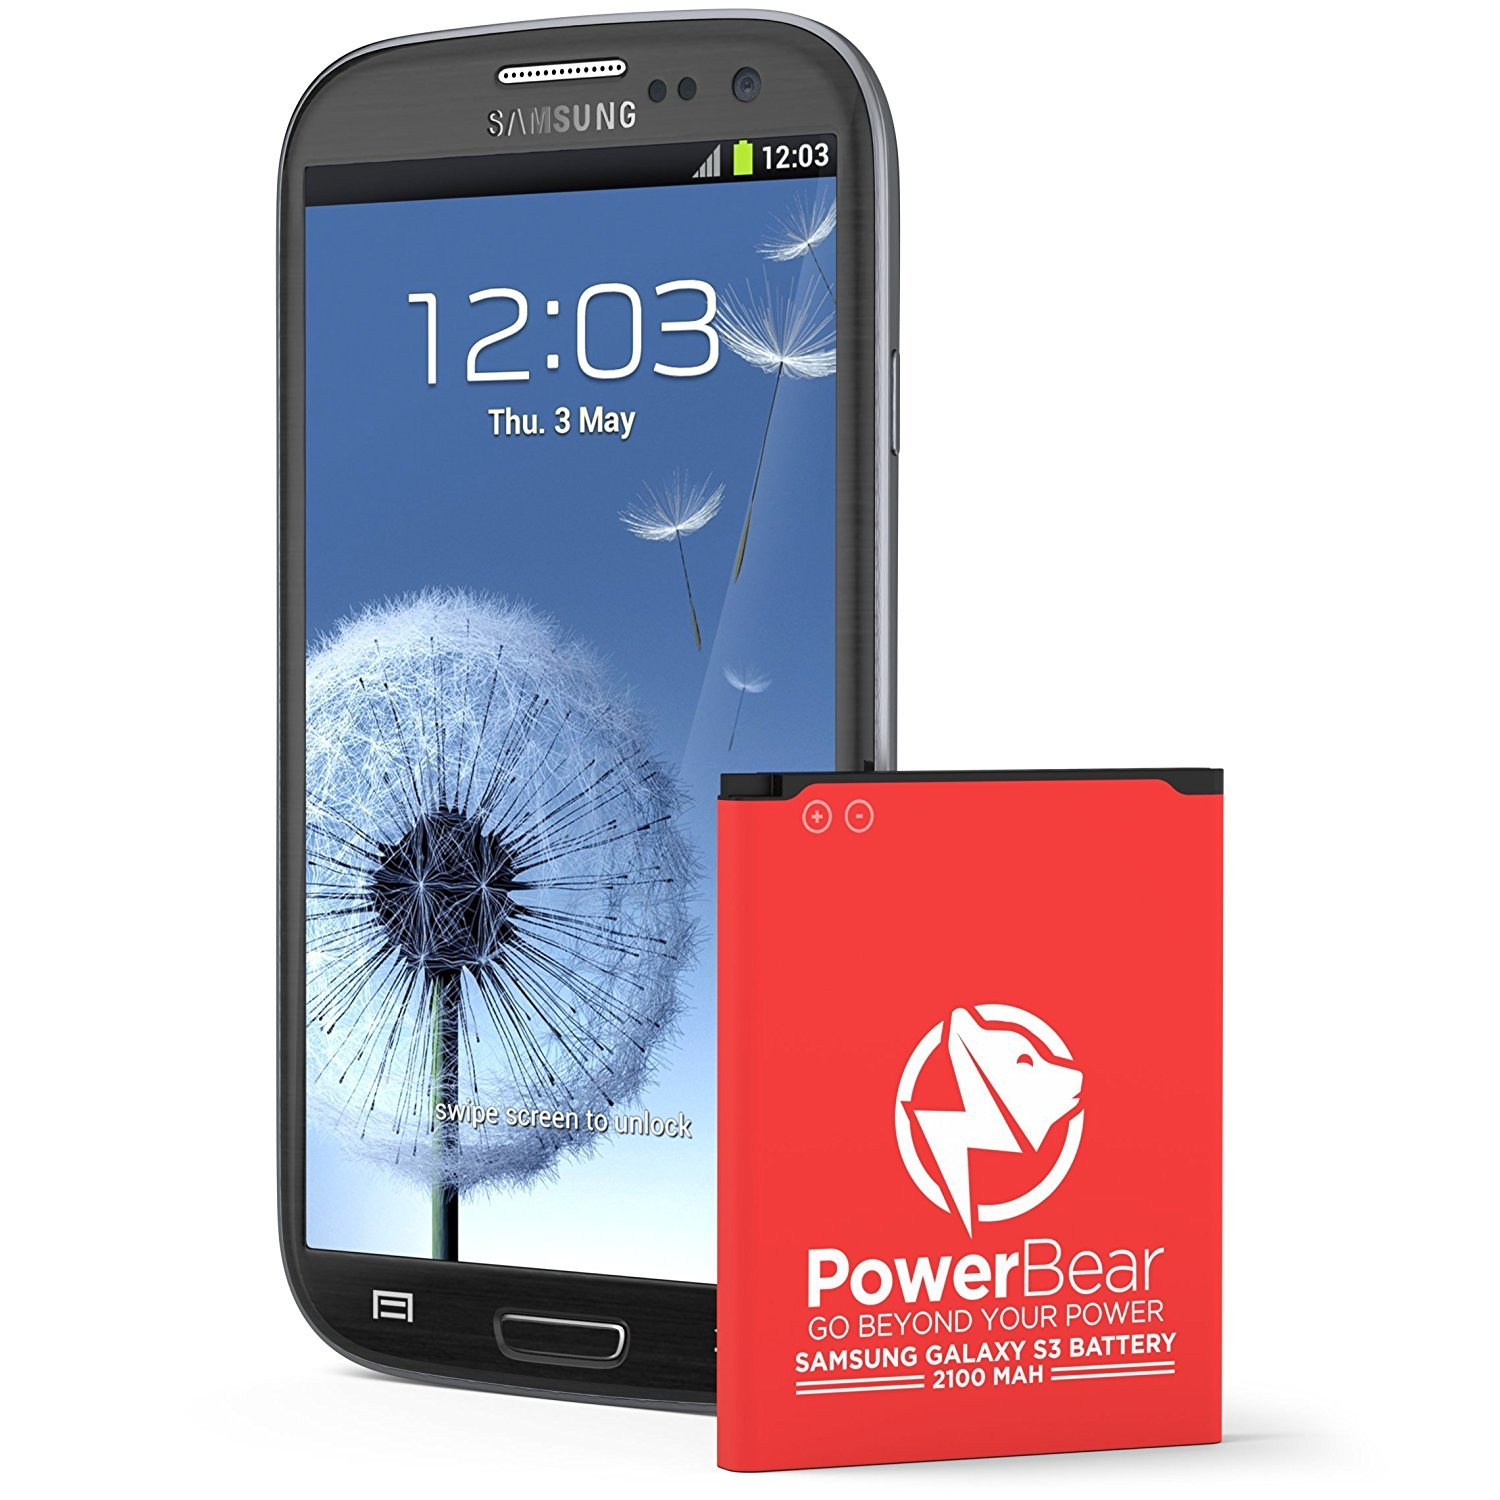 Samsung galaxy battery s3 verizon - Features High Quality Grade A Battery Cells This Powerbear Samsung Galaxy S3